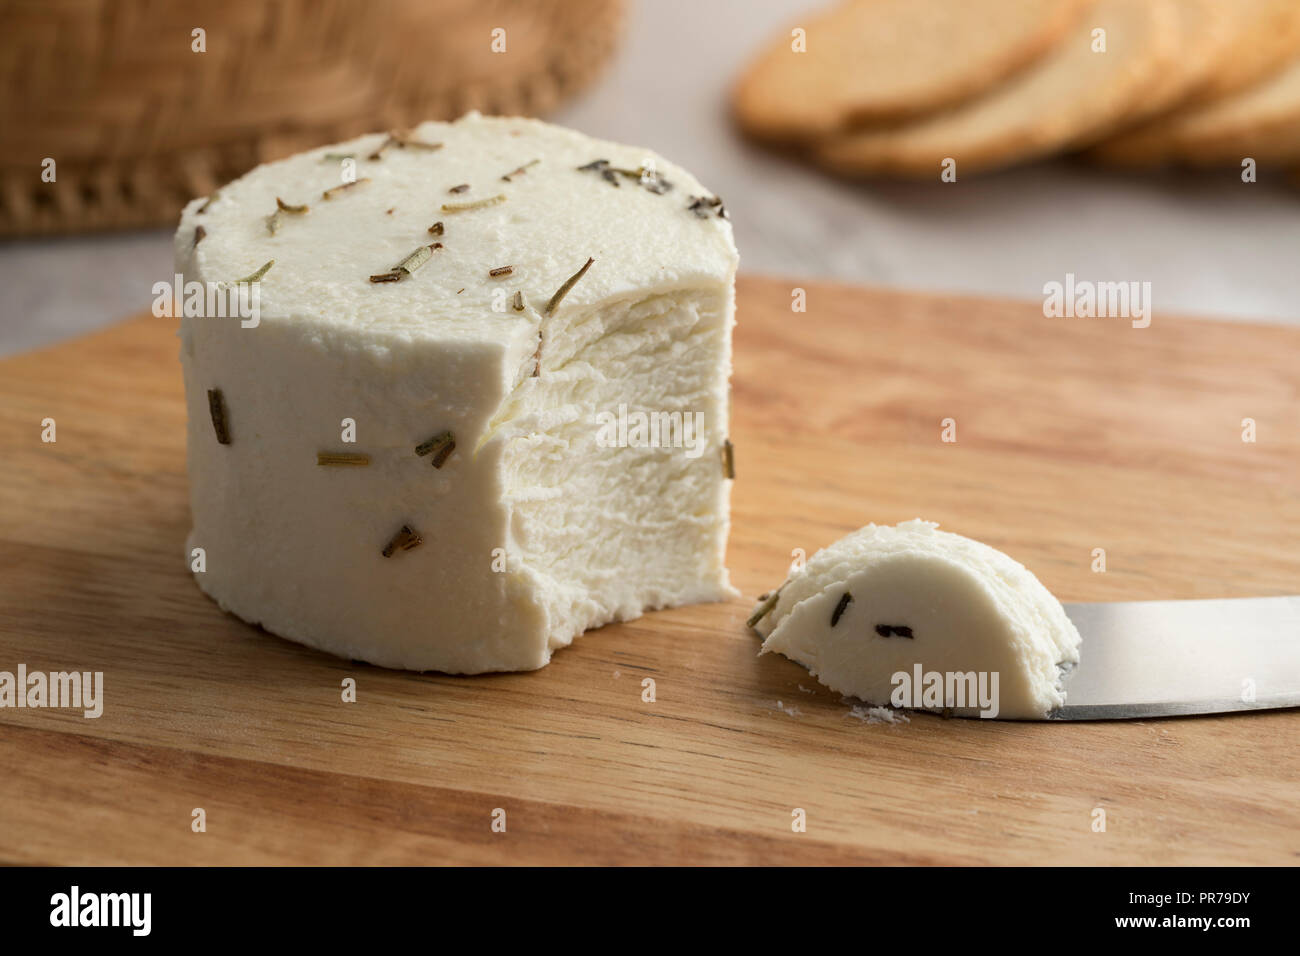 Preserved white organic Dutch goat cheese and herbs as a snack - Stock Image